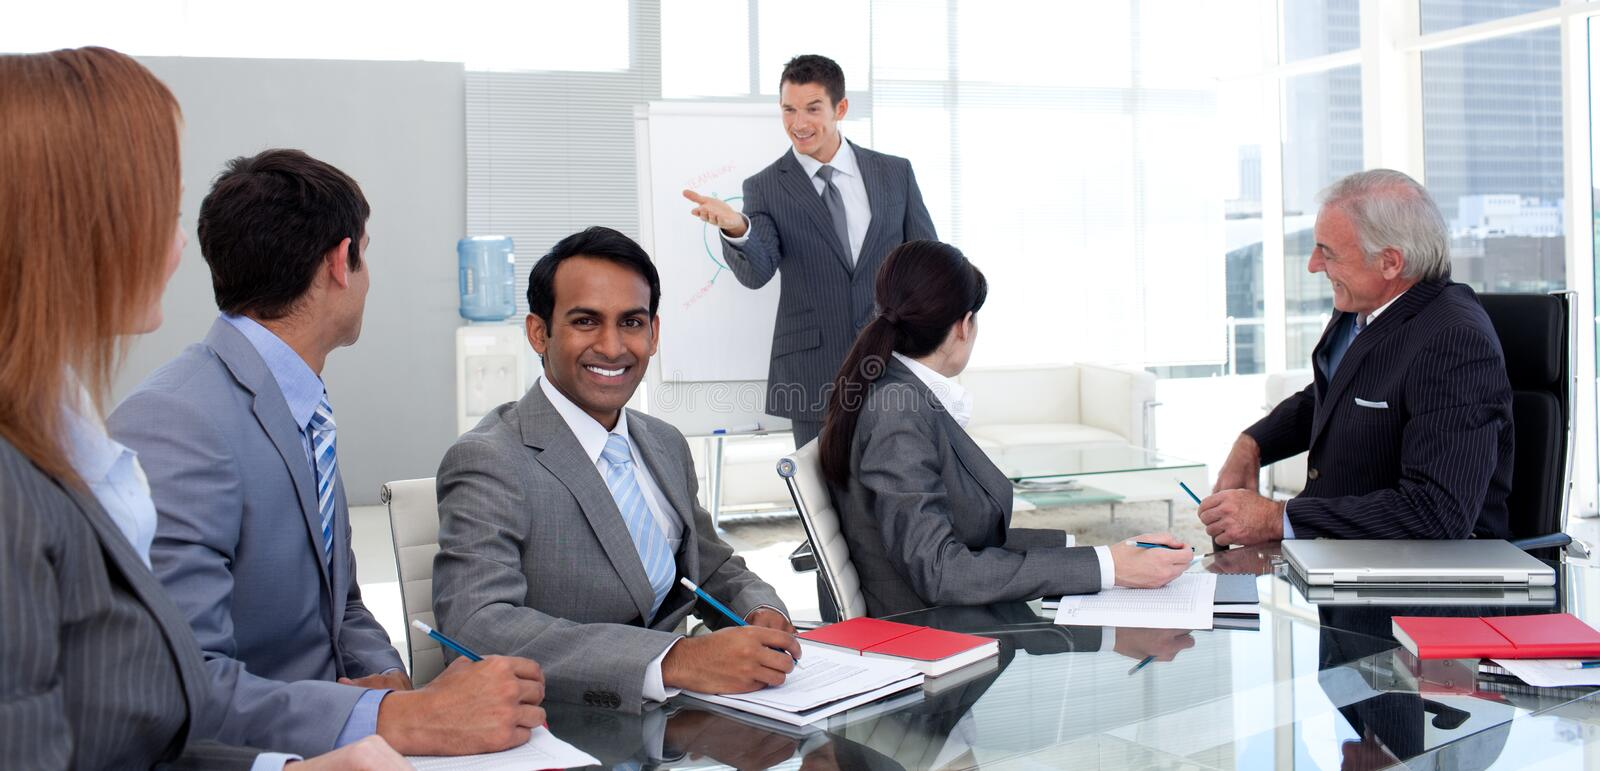 Businessman reporting sales figures to his team